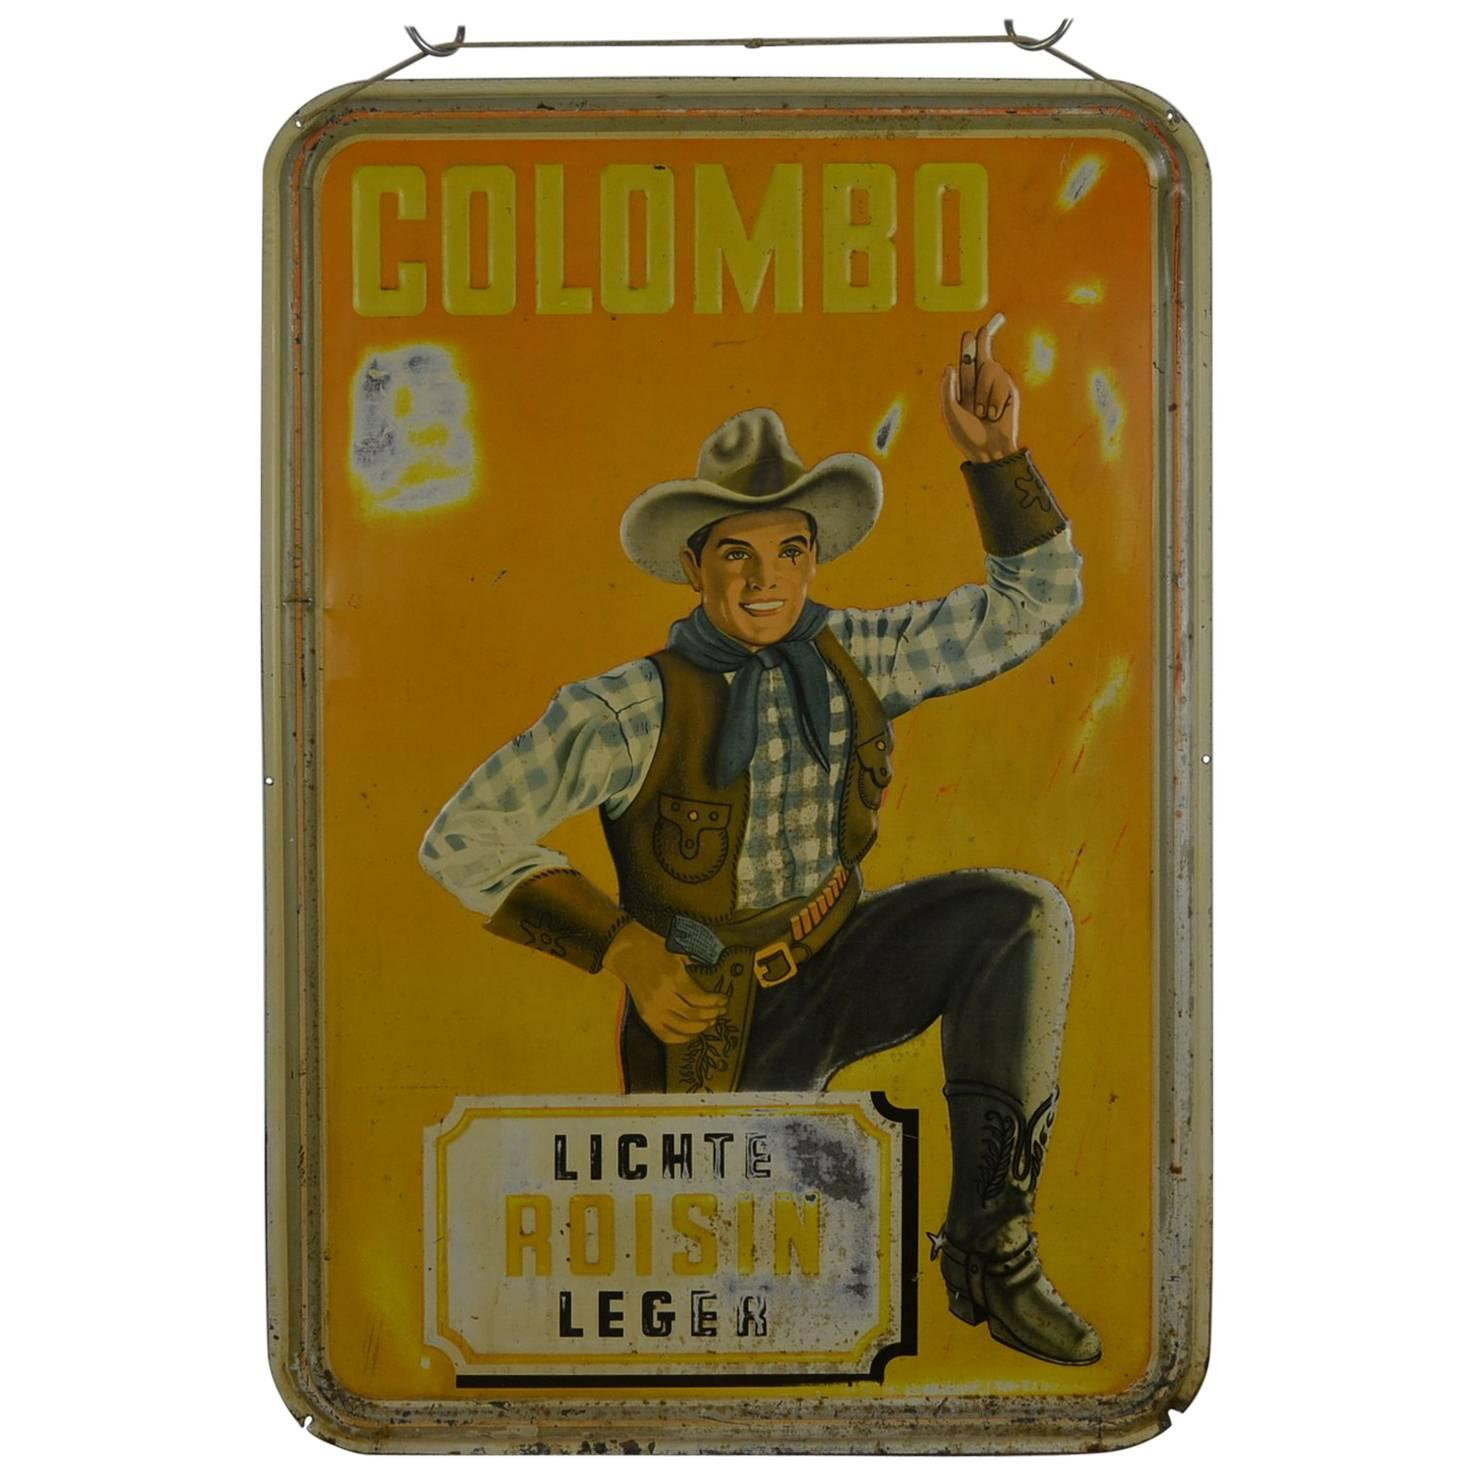 1940s Tin Advertising Sign for Colombo Cigarettes with a Smoking Cowboy